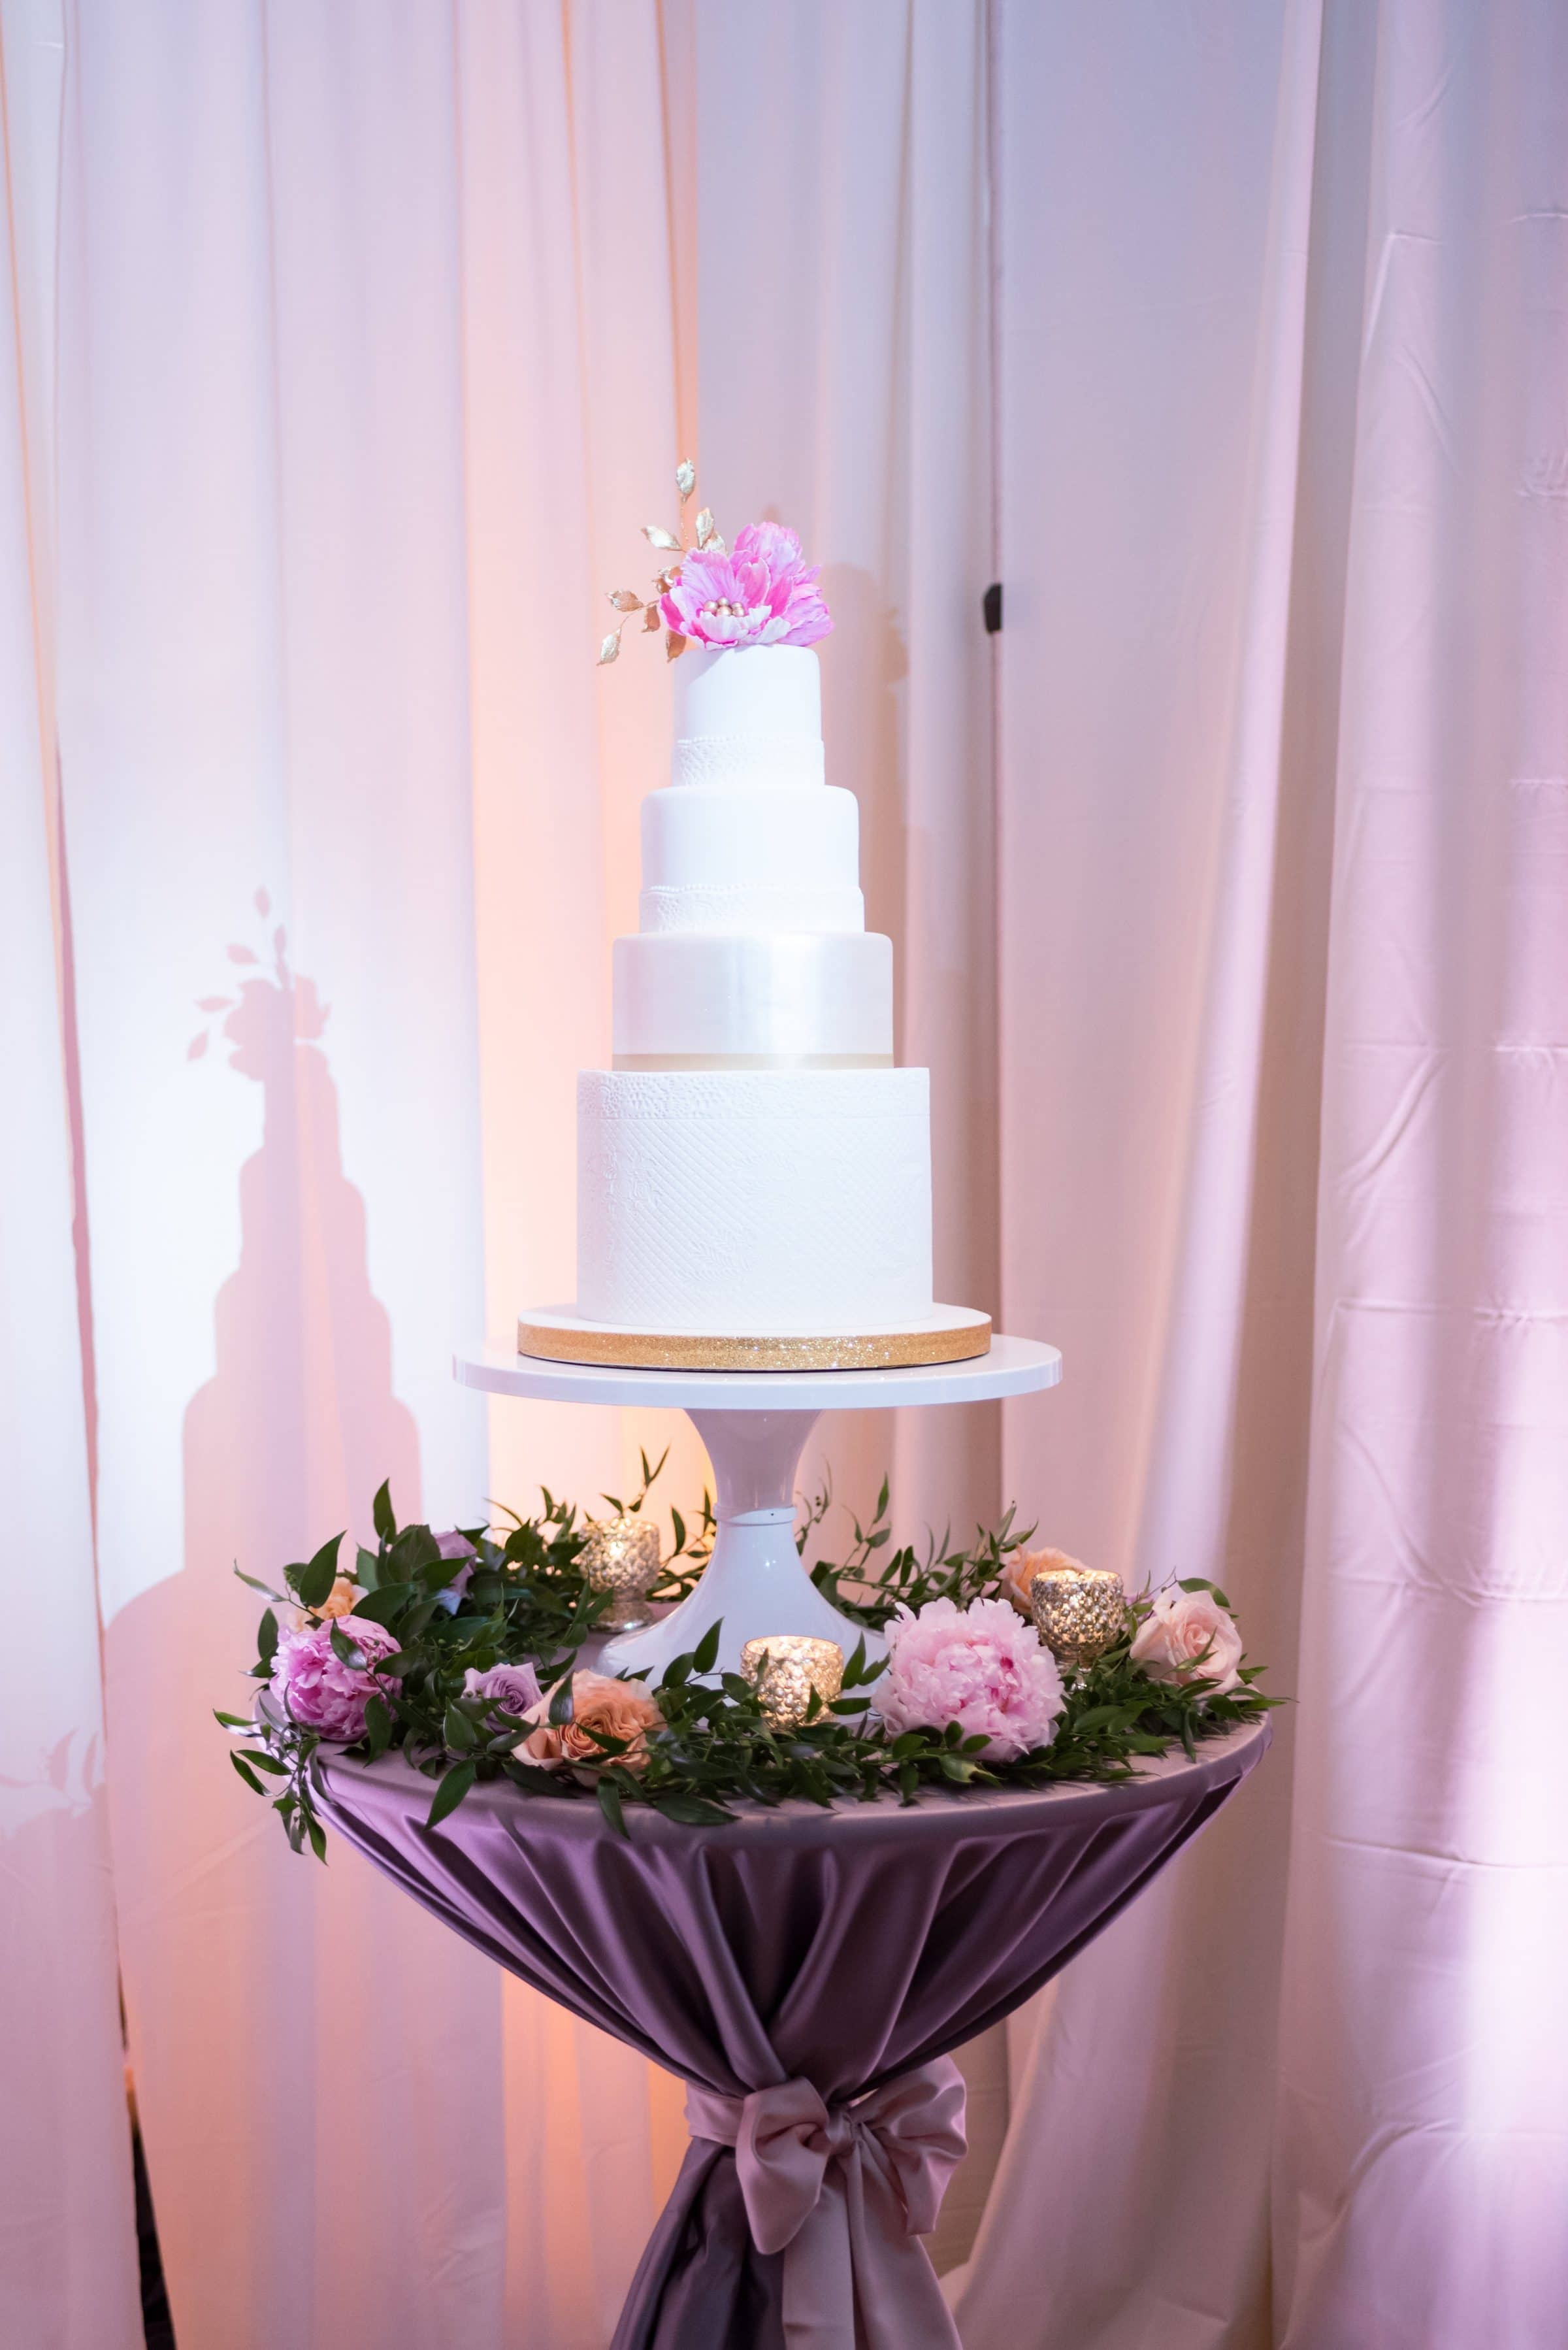 White Wedding Cake on Table with Fresh Floral